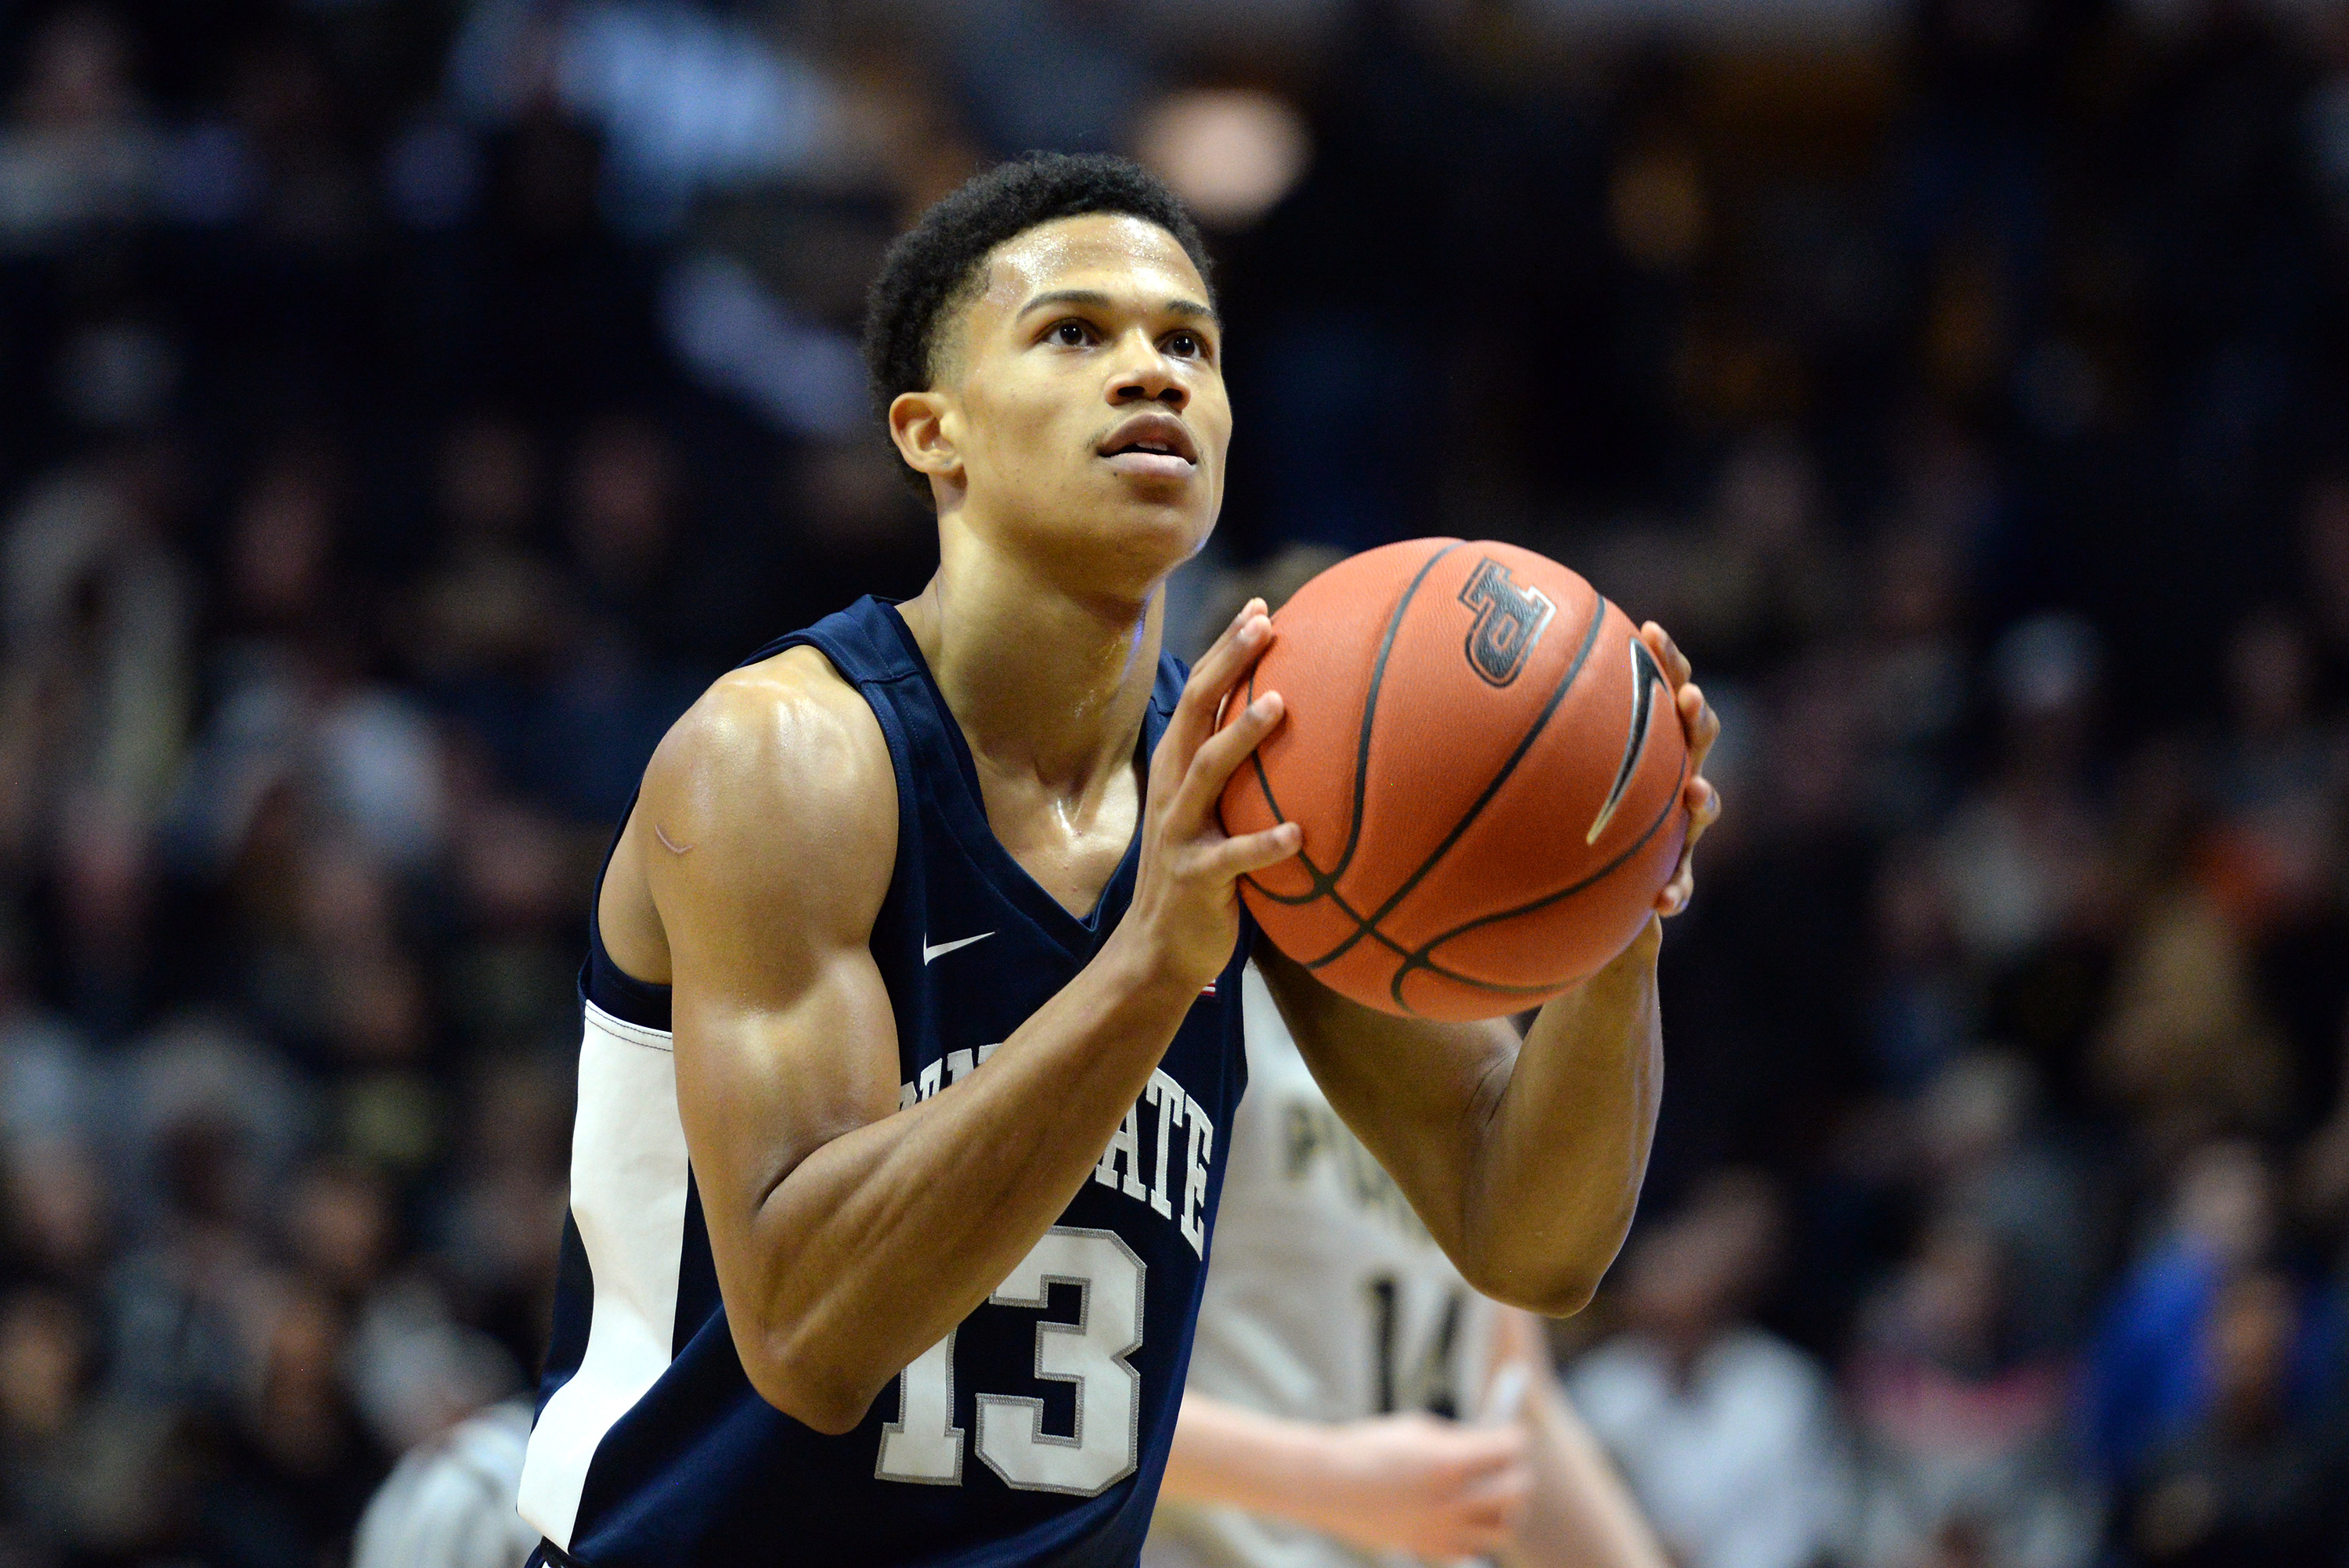 Former Penn State player Rasir Bolton just explained why he left the team in 2019, and it doesn't look good for Patrick Chambers.